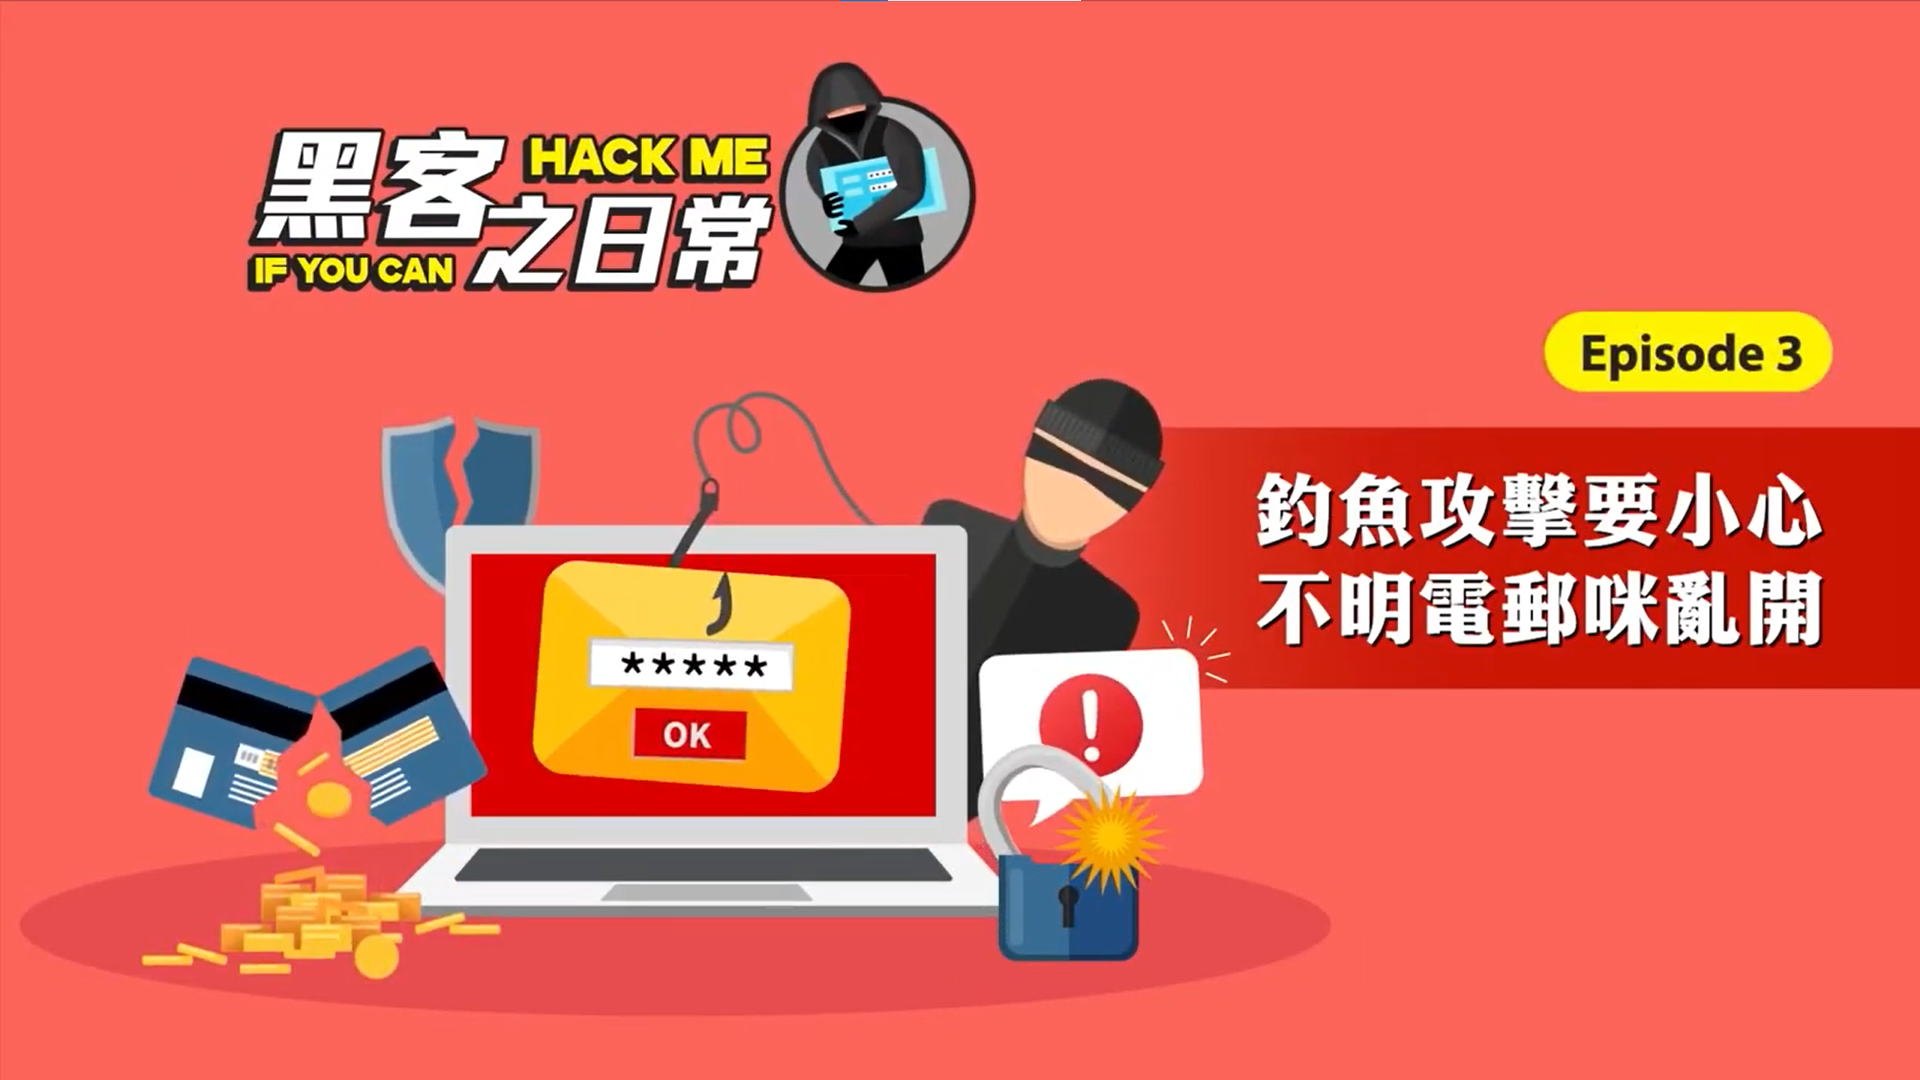 Hack me if you can episode 3【Learn these tips to protect against phishing and malware】